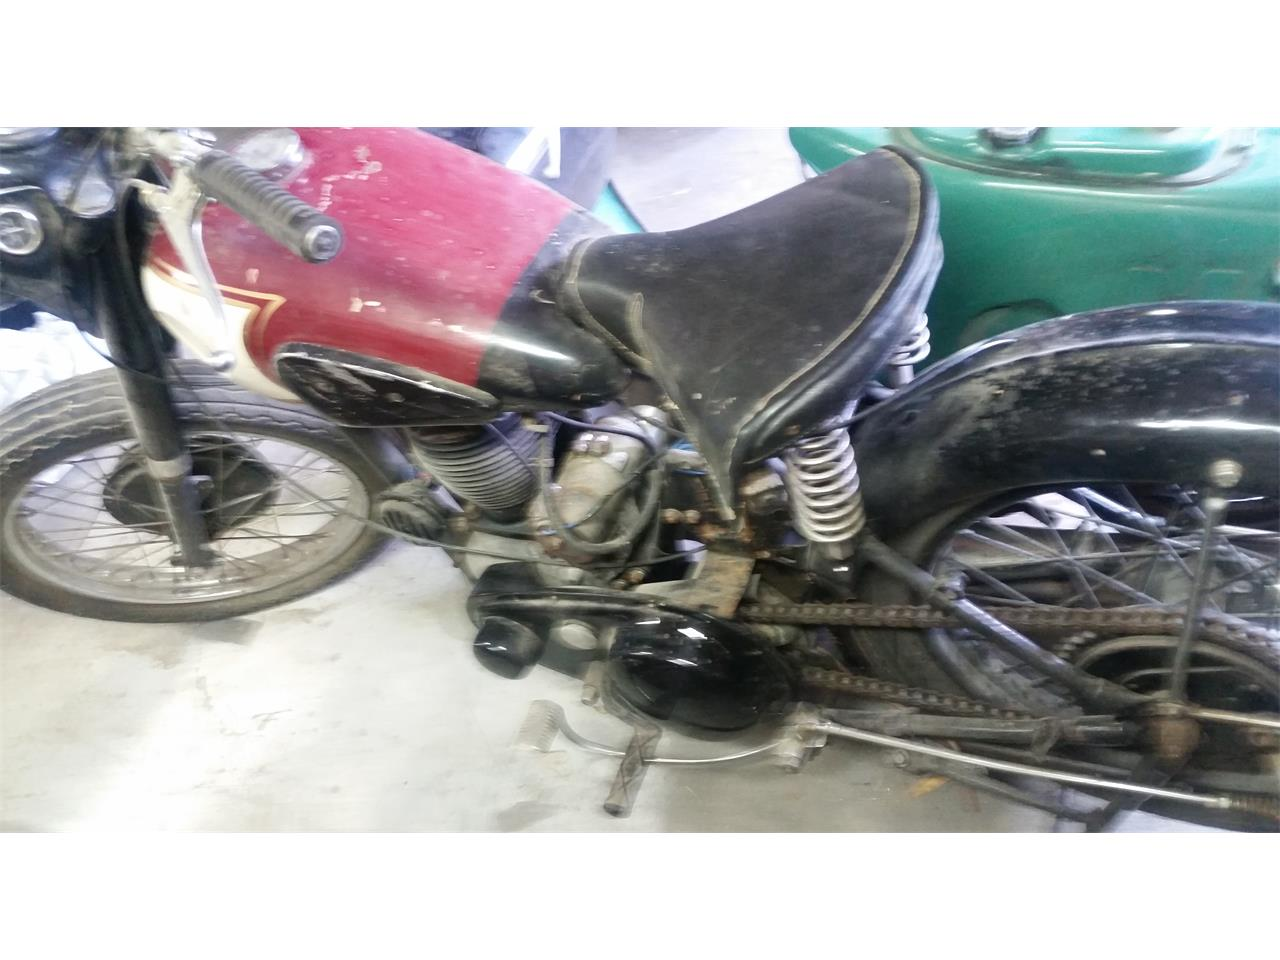 Large Picture of Classic 1956 Motorcycle - $3,495.00 - PL19